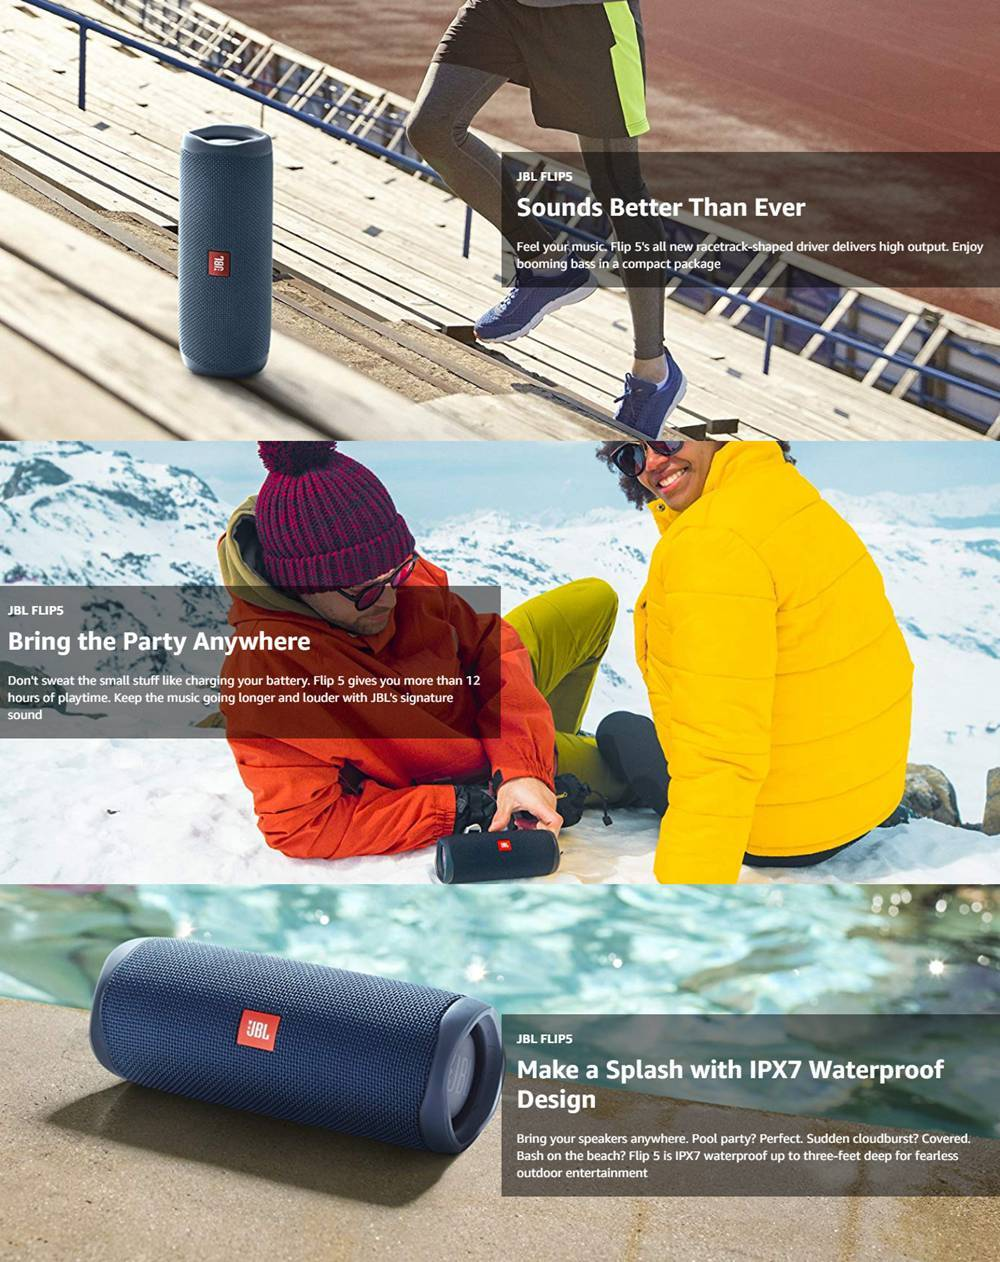 JBL FLIP 5 20W 44mm Driver Bluetooth Speaker USB-C Quick Charge IPX7 Waterproof 12 Hours Playtime - Black